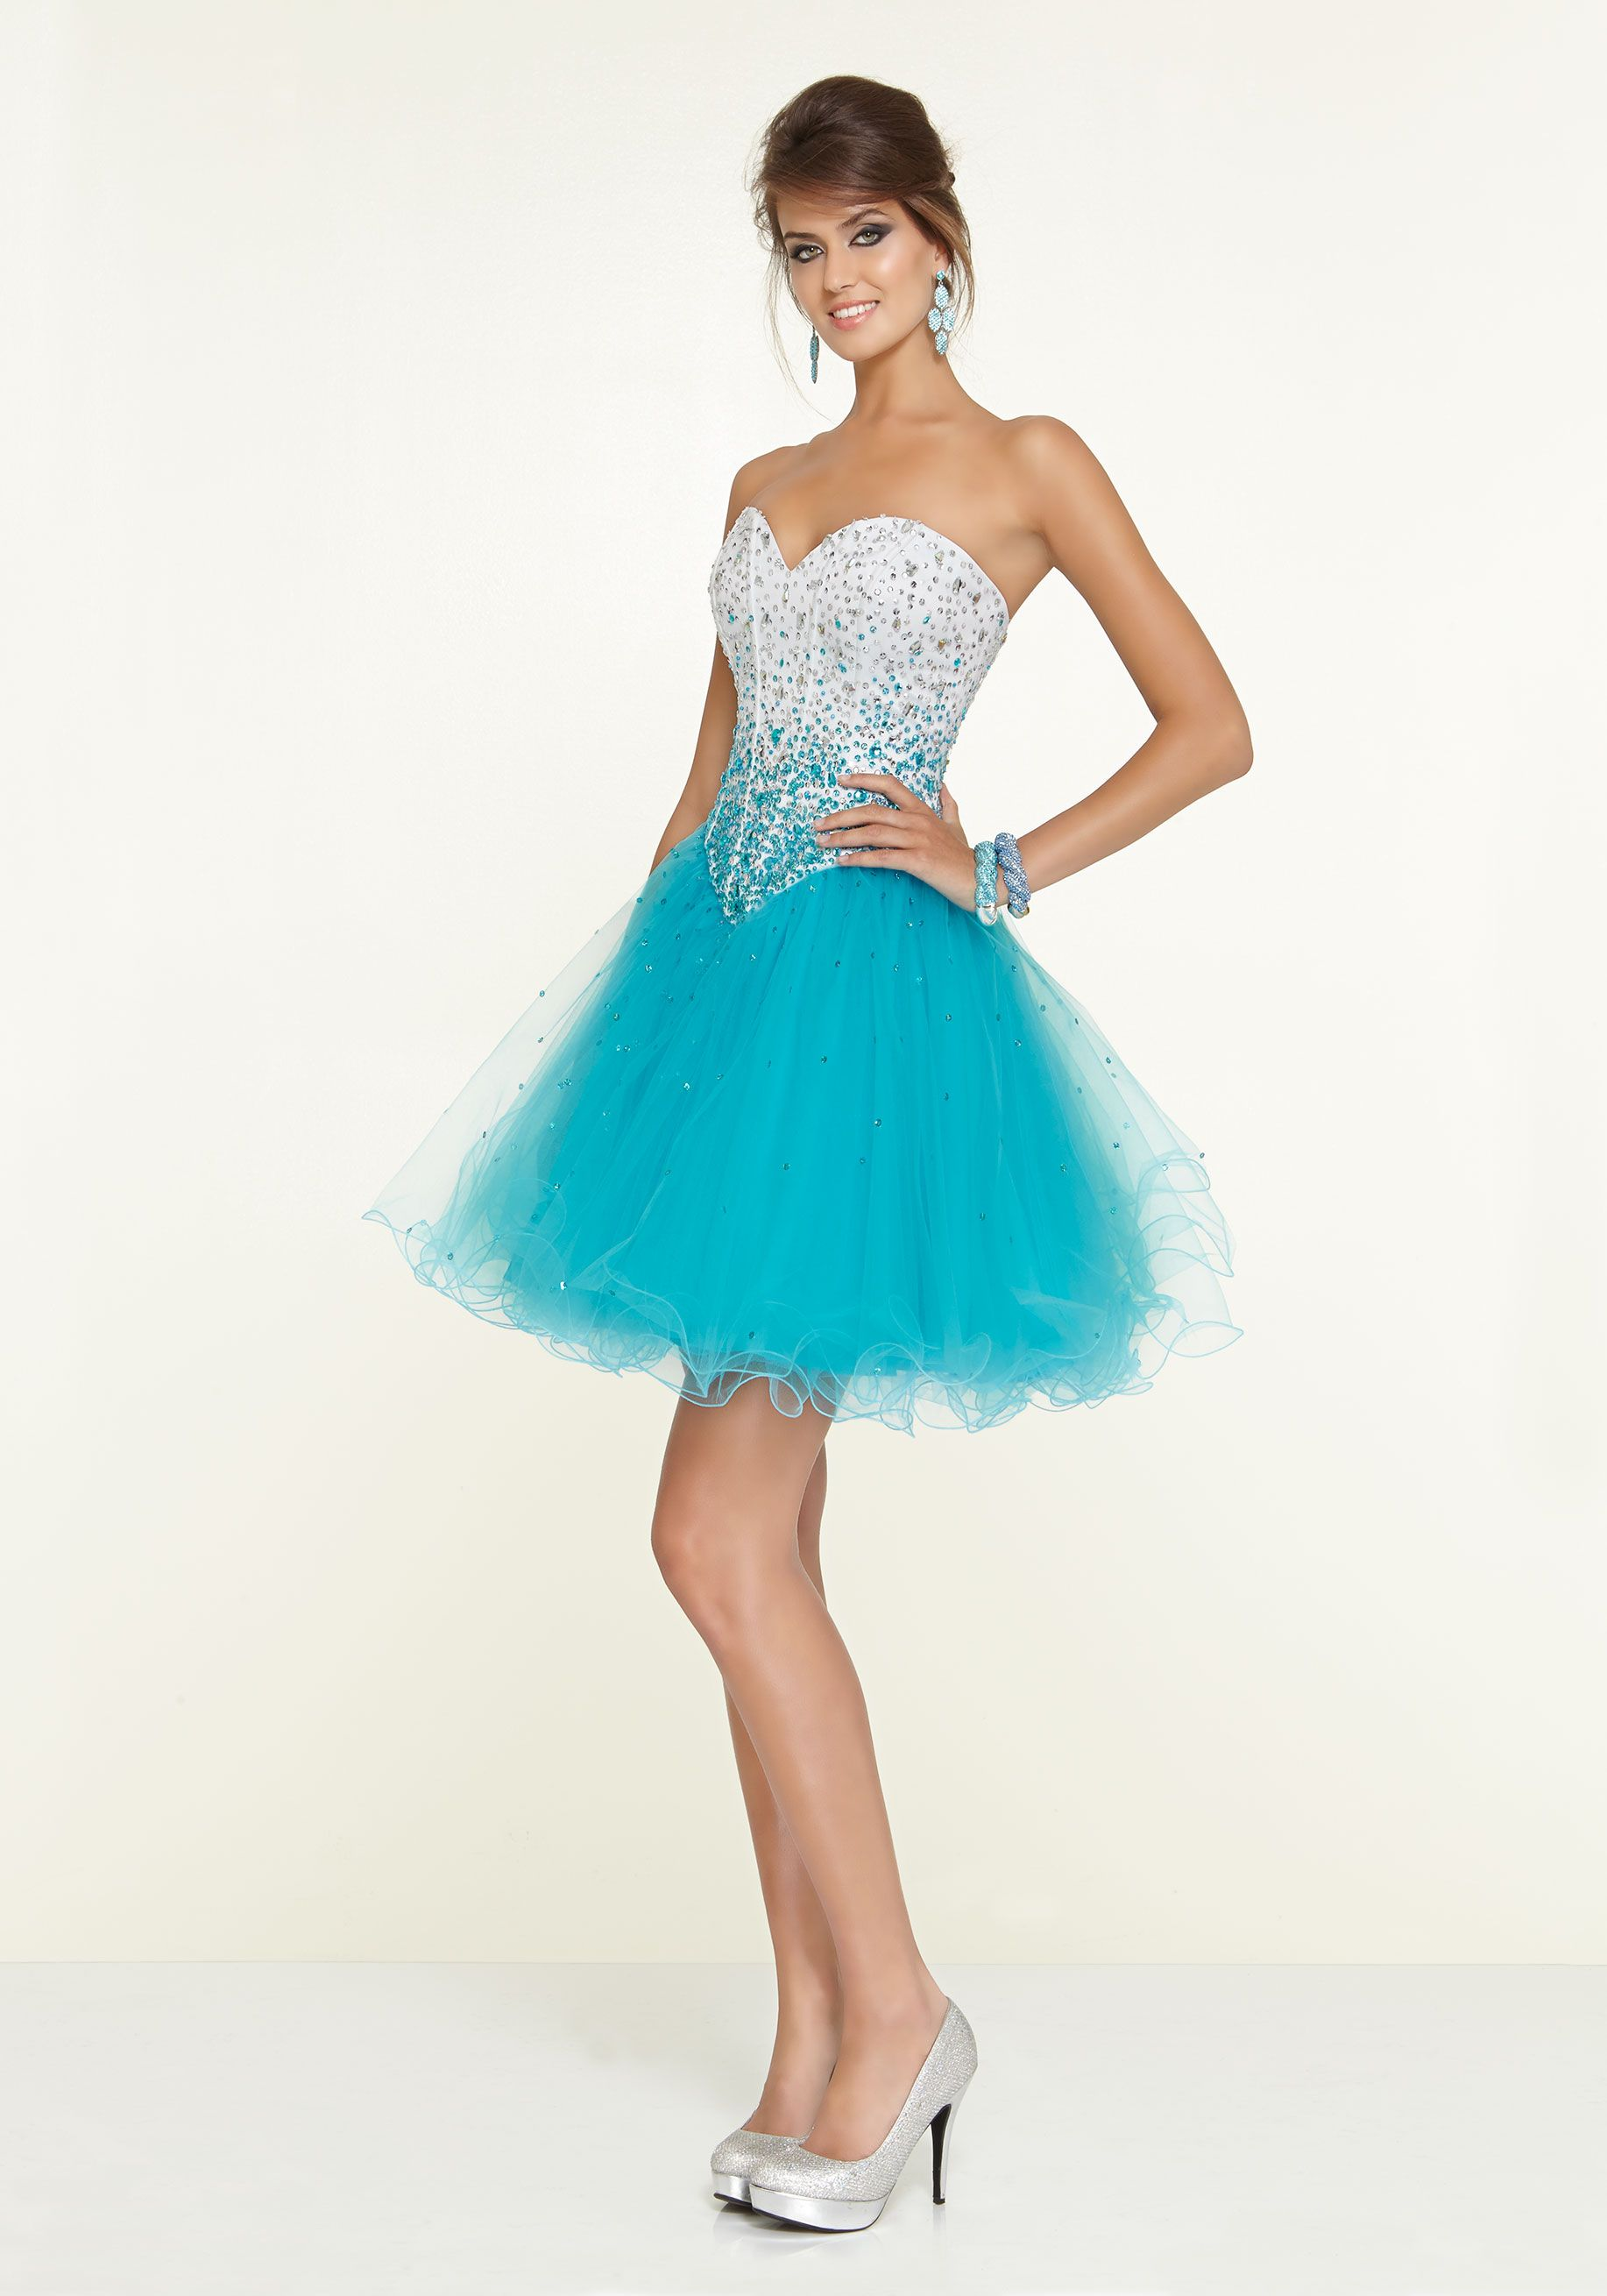 8ac3901a7d Teal Satin and Tulle Sweetheart Neck with Ombre Beading Party Dress.  Morilee by Madeline Gardner Homecoming and Short Party Dress. Style 9311.